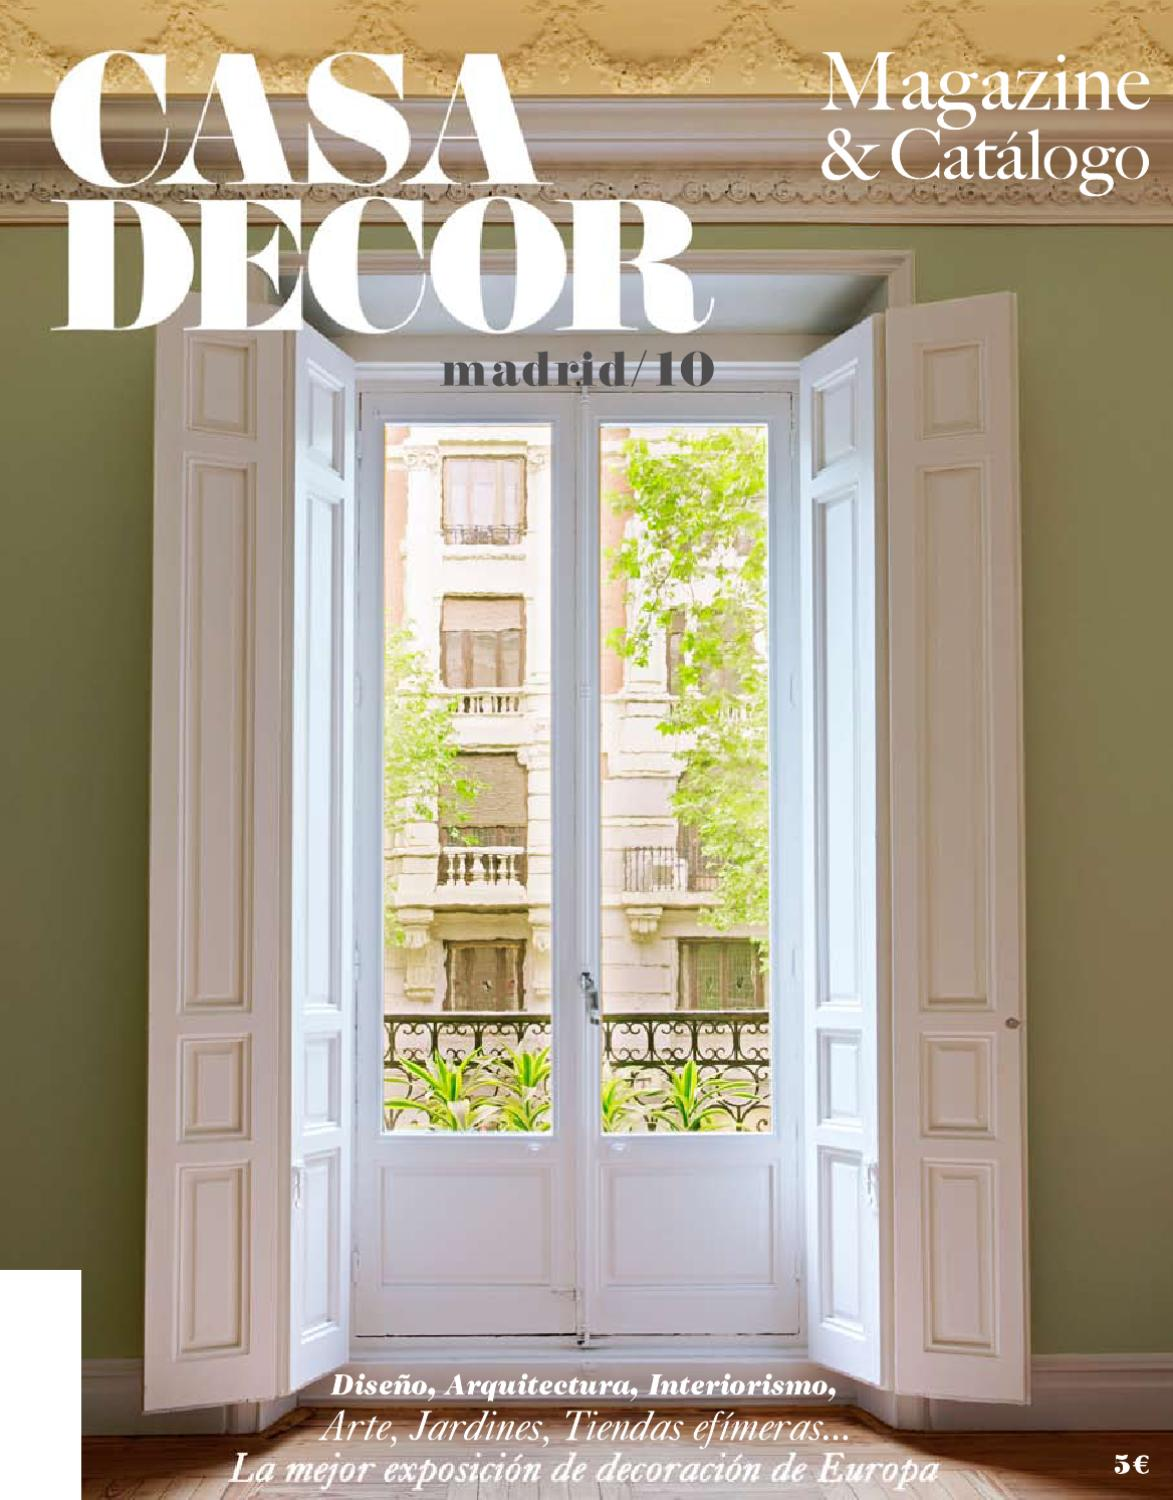 Camino Hormigueras 180 Madrid Casa Decor Madird 2010 By Casa Decor Issuu